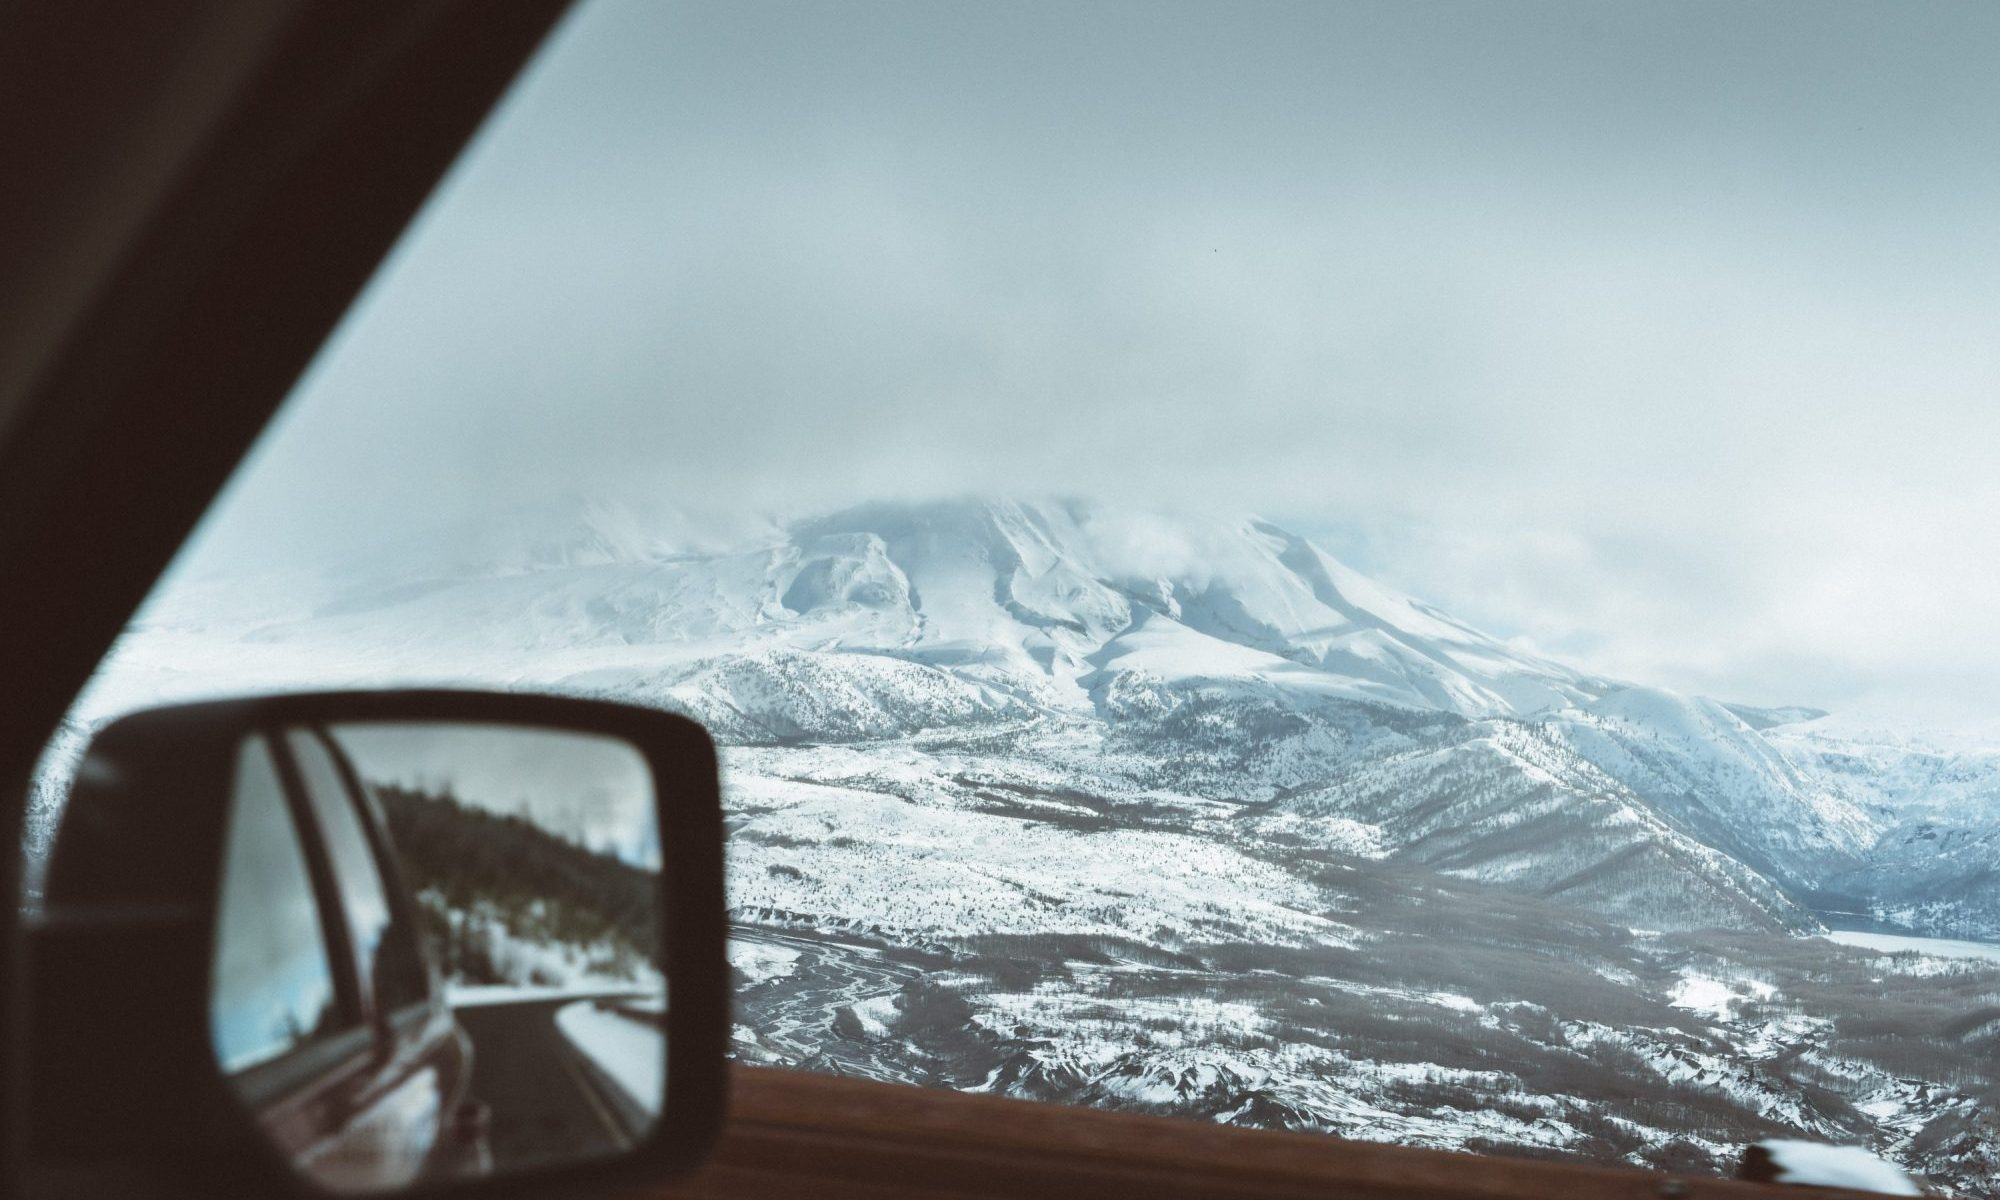 Skiers Over New Year Prepare for a £450 Wipeout at the Car Hire Rental Desk. Photo by Adrian - Unsplash - taken in Mont Saint Helens, USA.